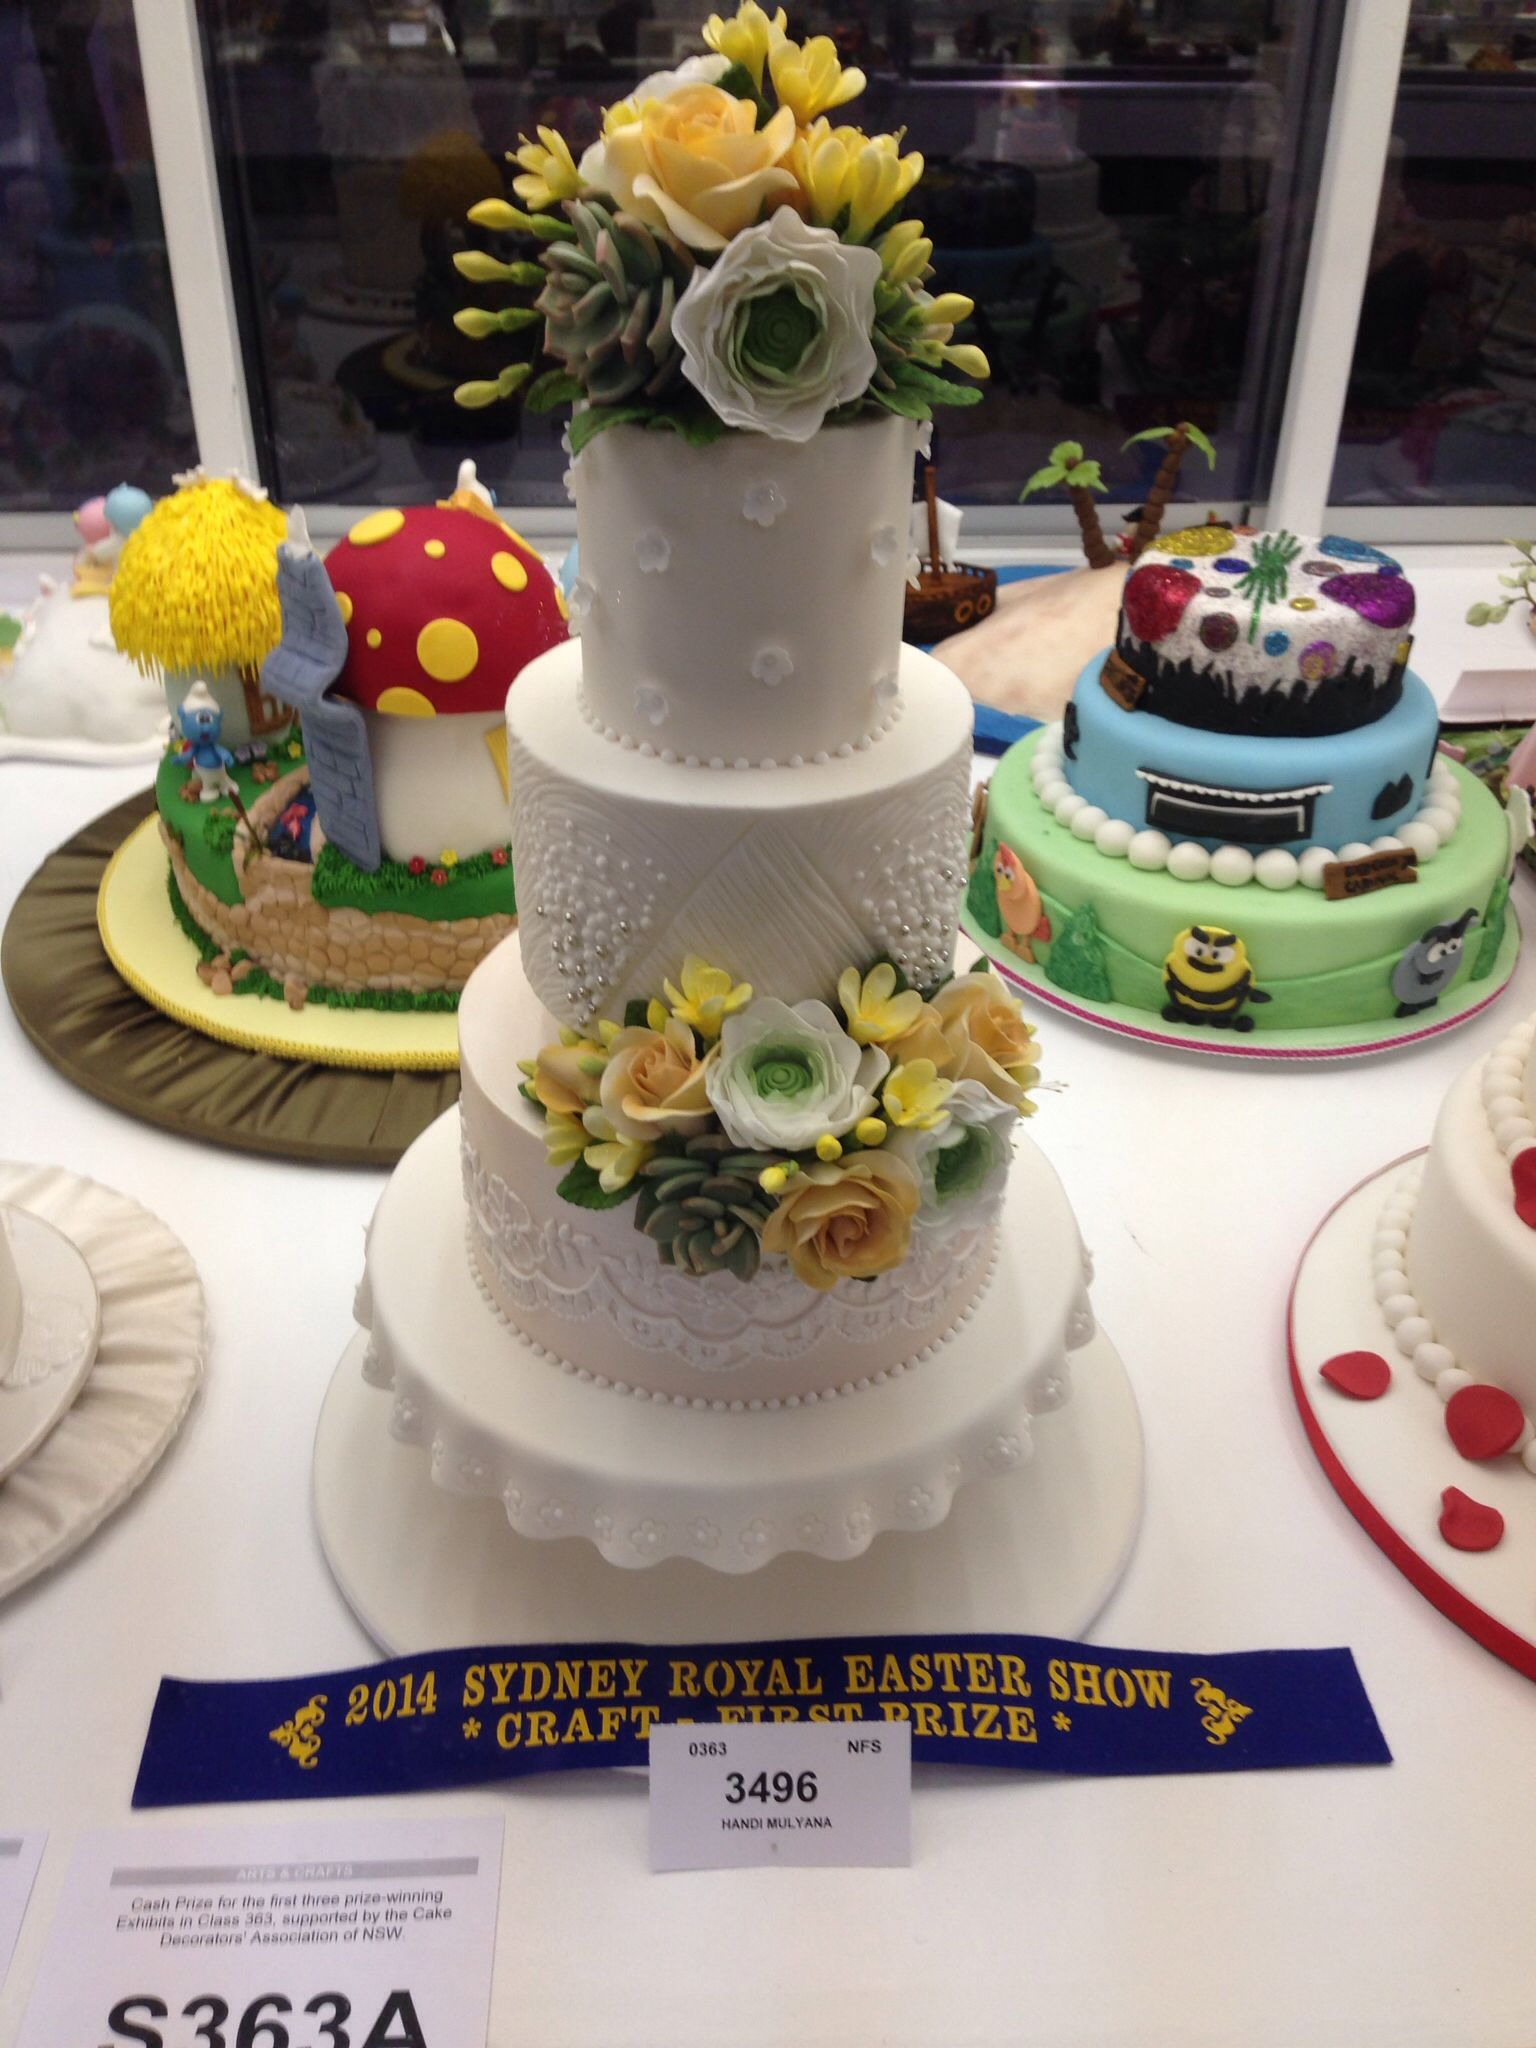 First prize at the show petition 2014 wedding cake